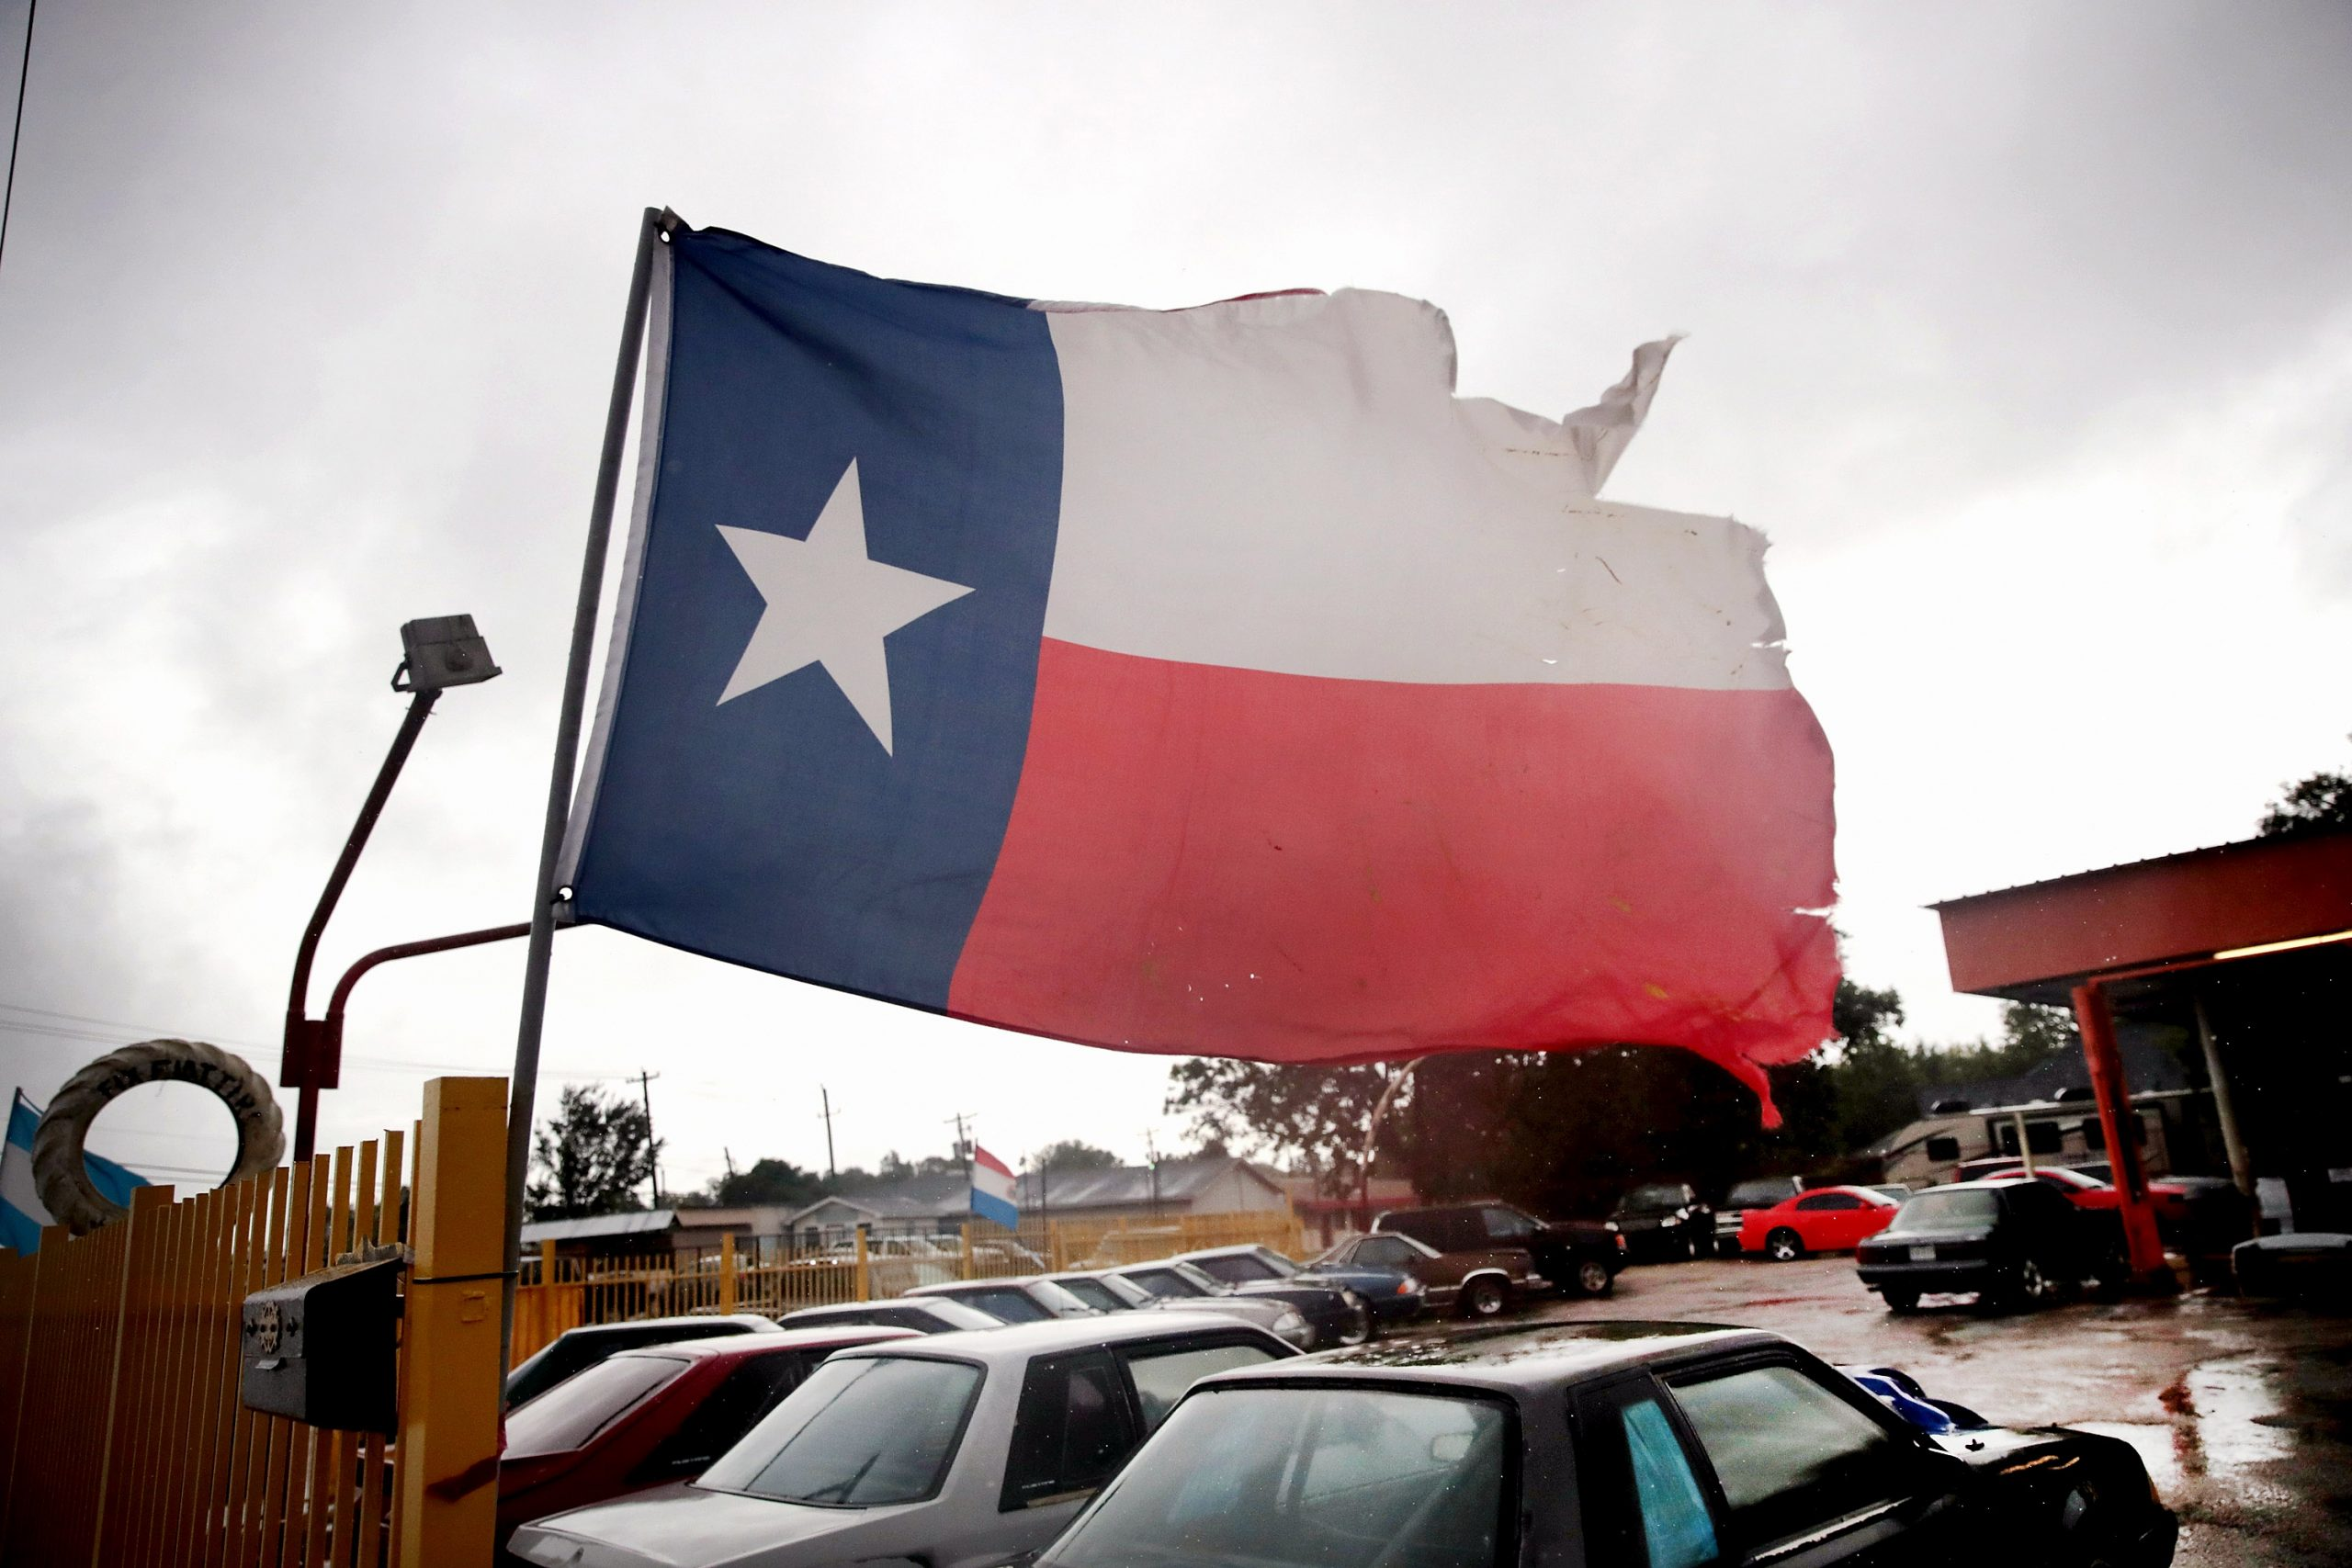 An True Historical past of Texas Begins and Ends With White Supremacy